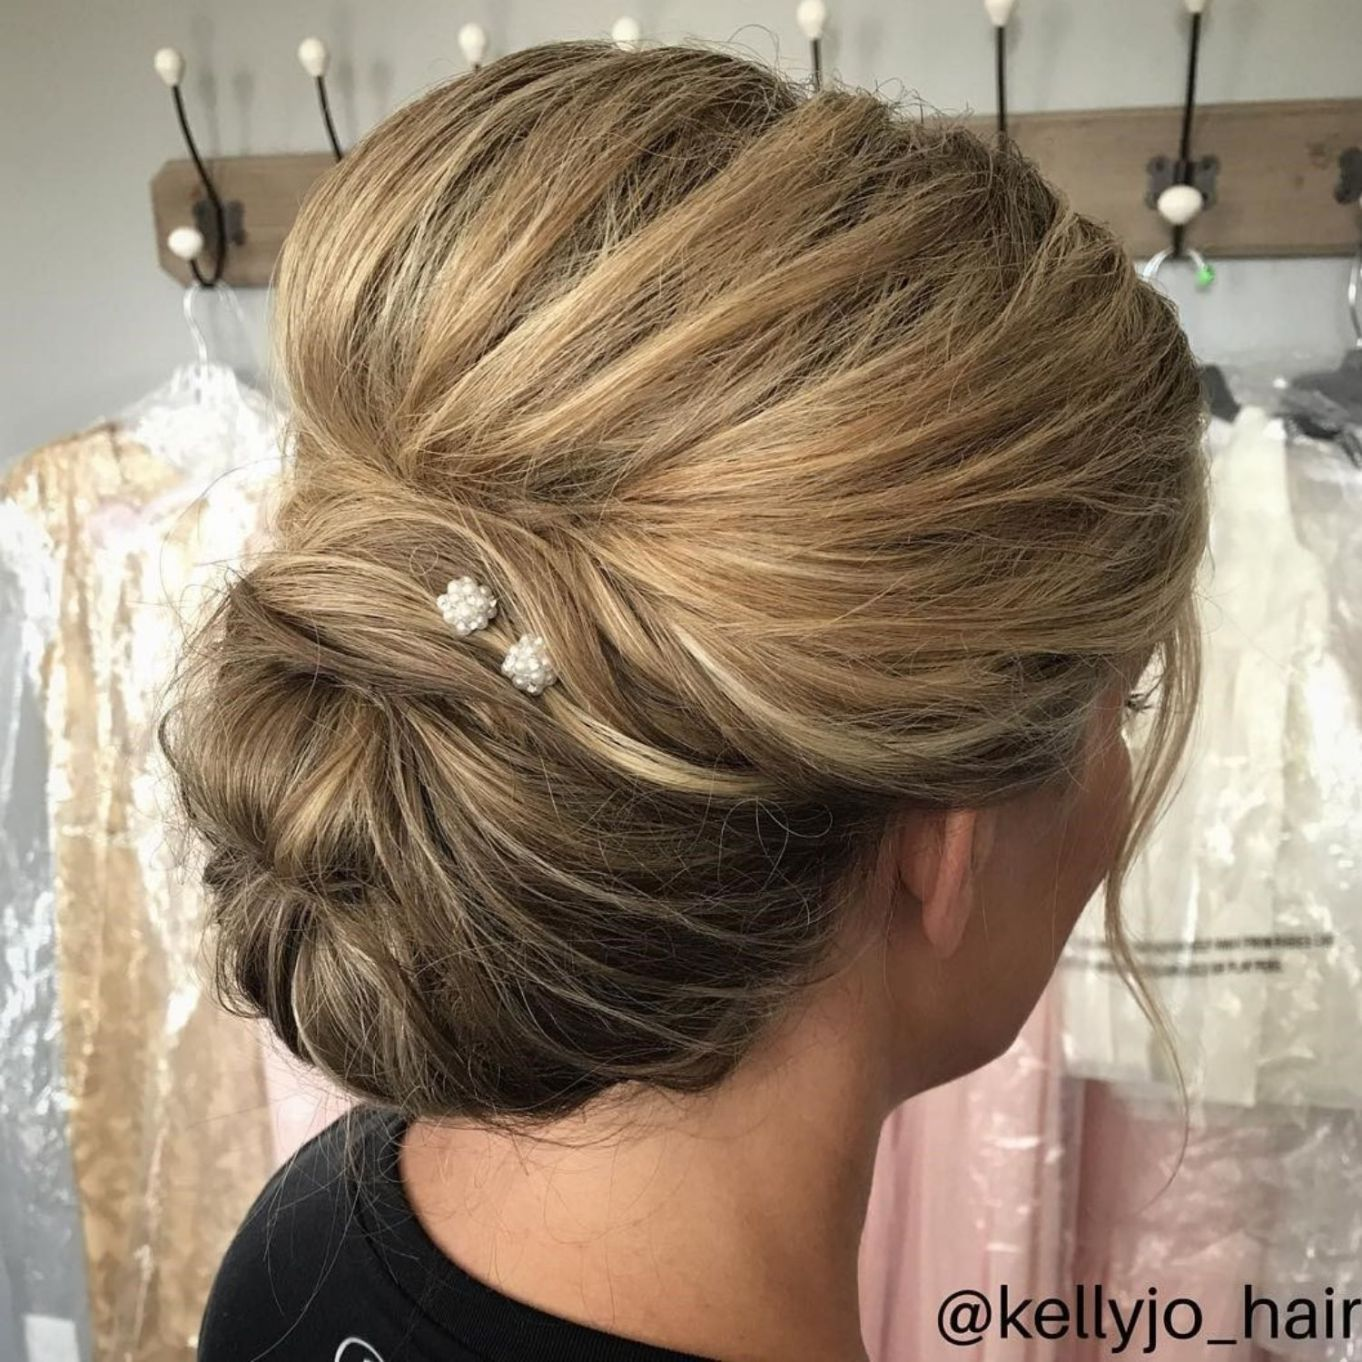 Lovely Bouffant Updo For Long Hair Mother Of The Groom Hairstyles Mother Of The Bride Hair Mom Hairstyles